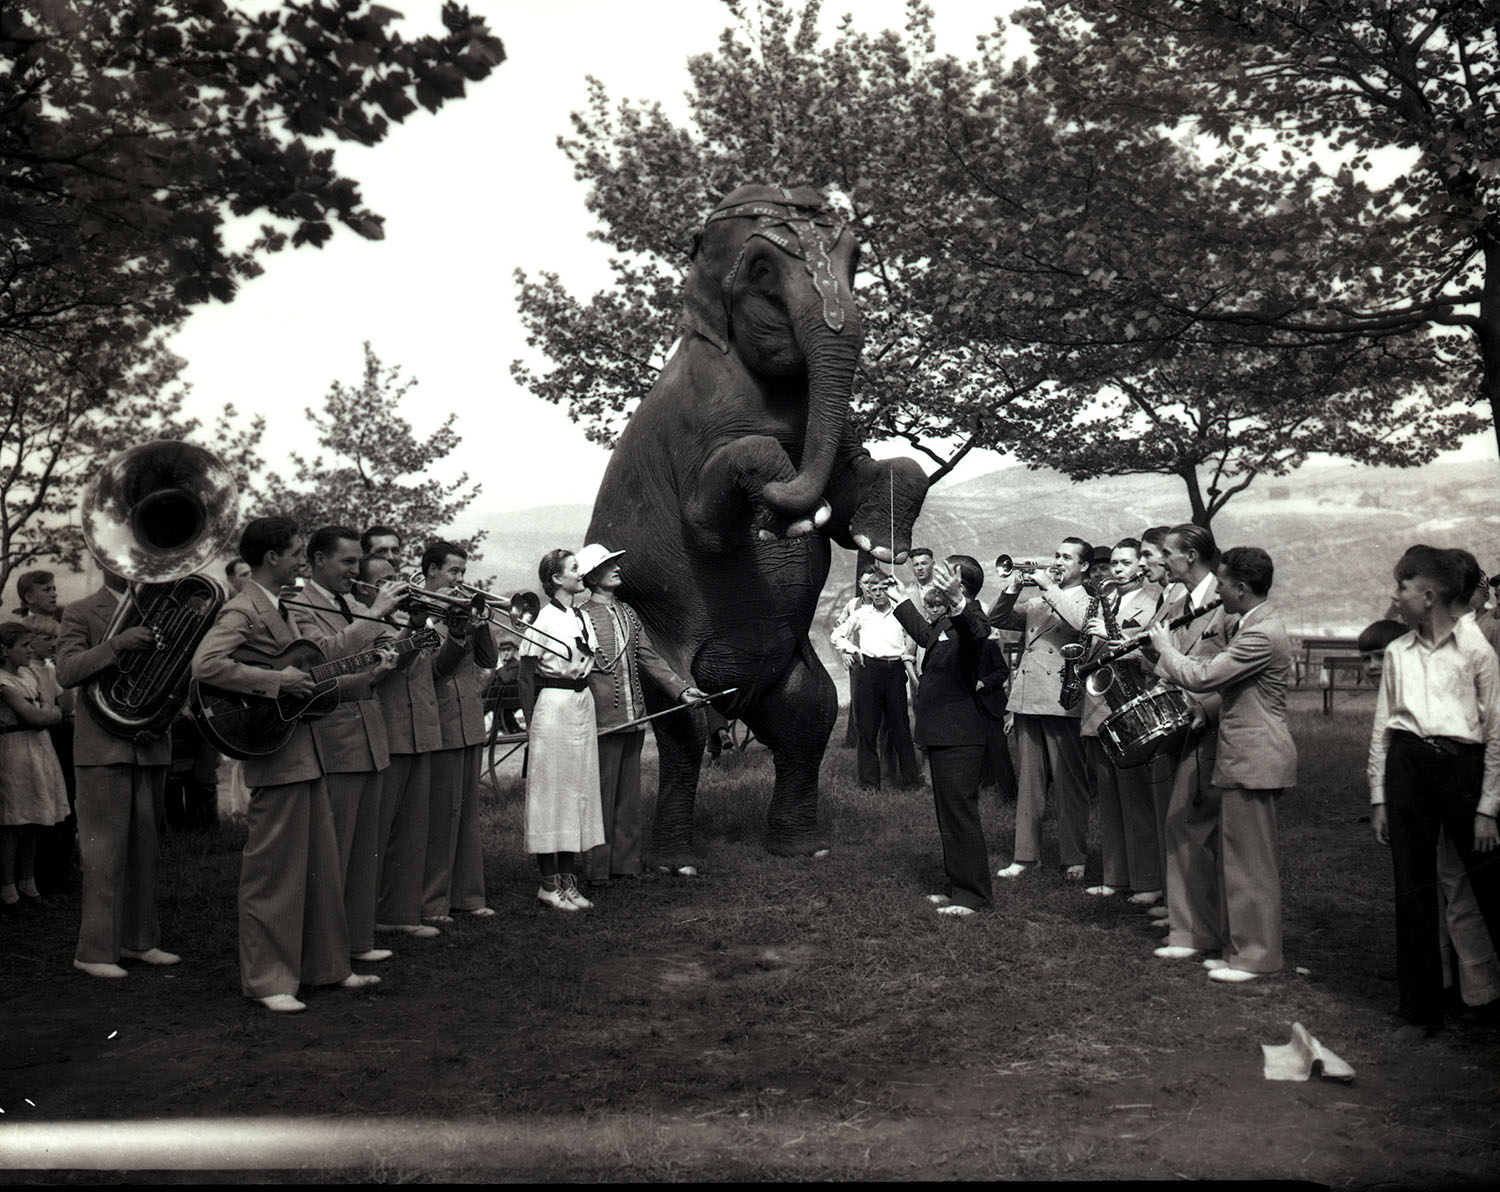 Entertainers at Kennywood Park with an elephant, 1930s.